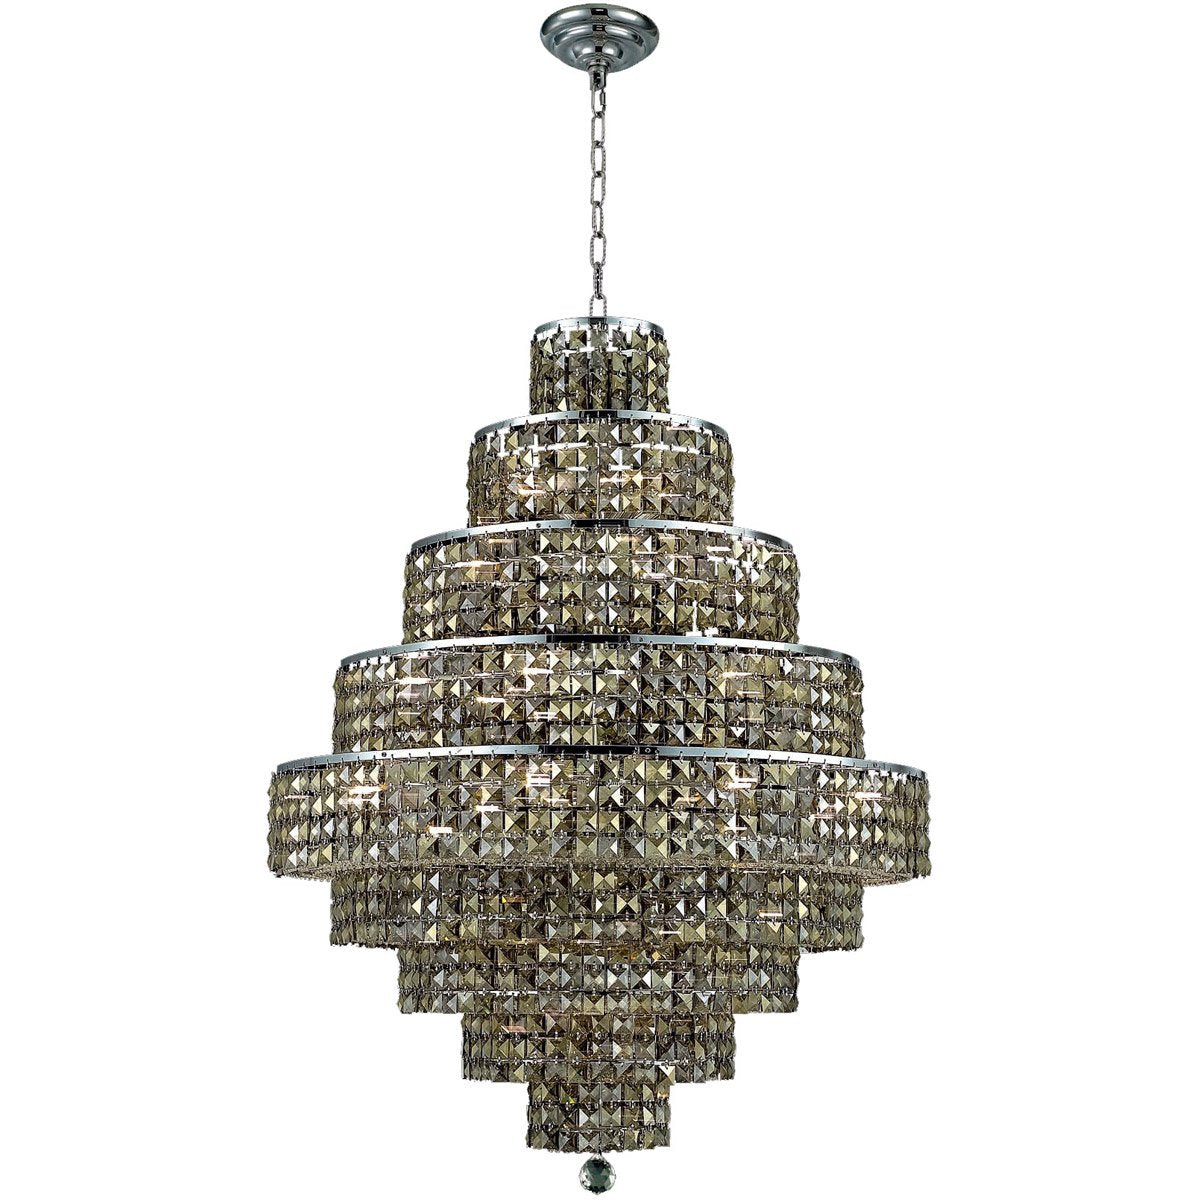 Maxime 30 Crystal Chandelier With 20 Lights - Chrome Finish And Smokey / Royal Cut Crystal Chandelier